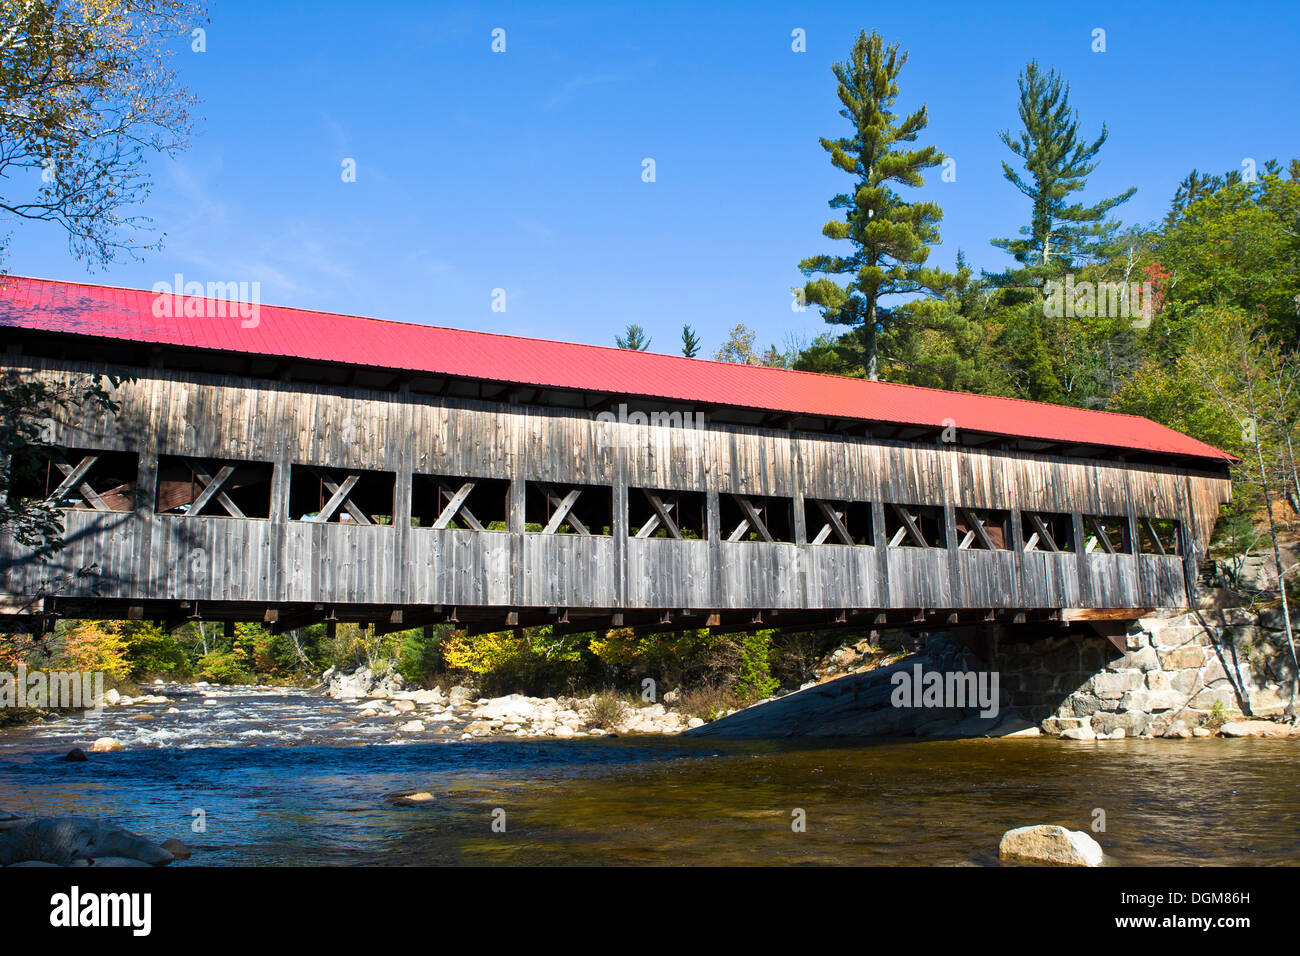 Albany Bridge, a covered wooden bridge on the Swift River, New Hampshire, New England, USA - Stock Image